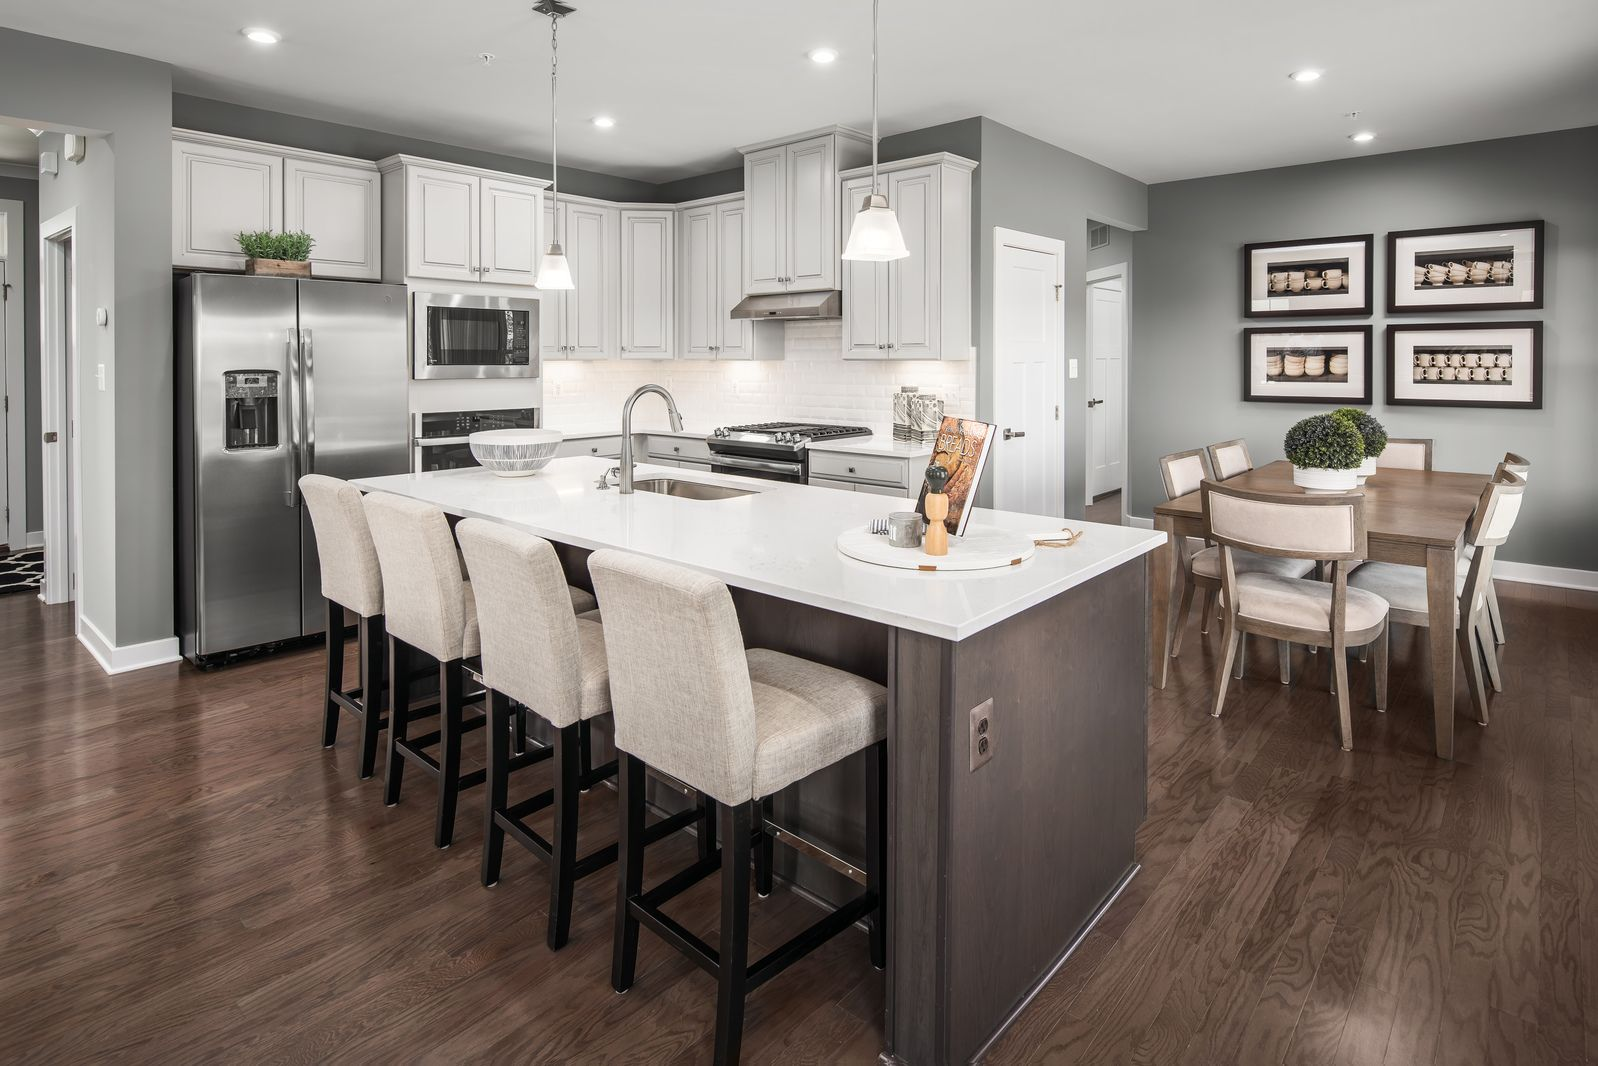 Kitchen featured in the Roanoke By Ryan Homes in Harrisburg, PA